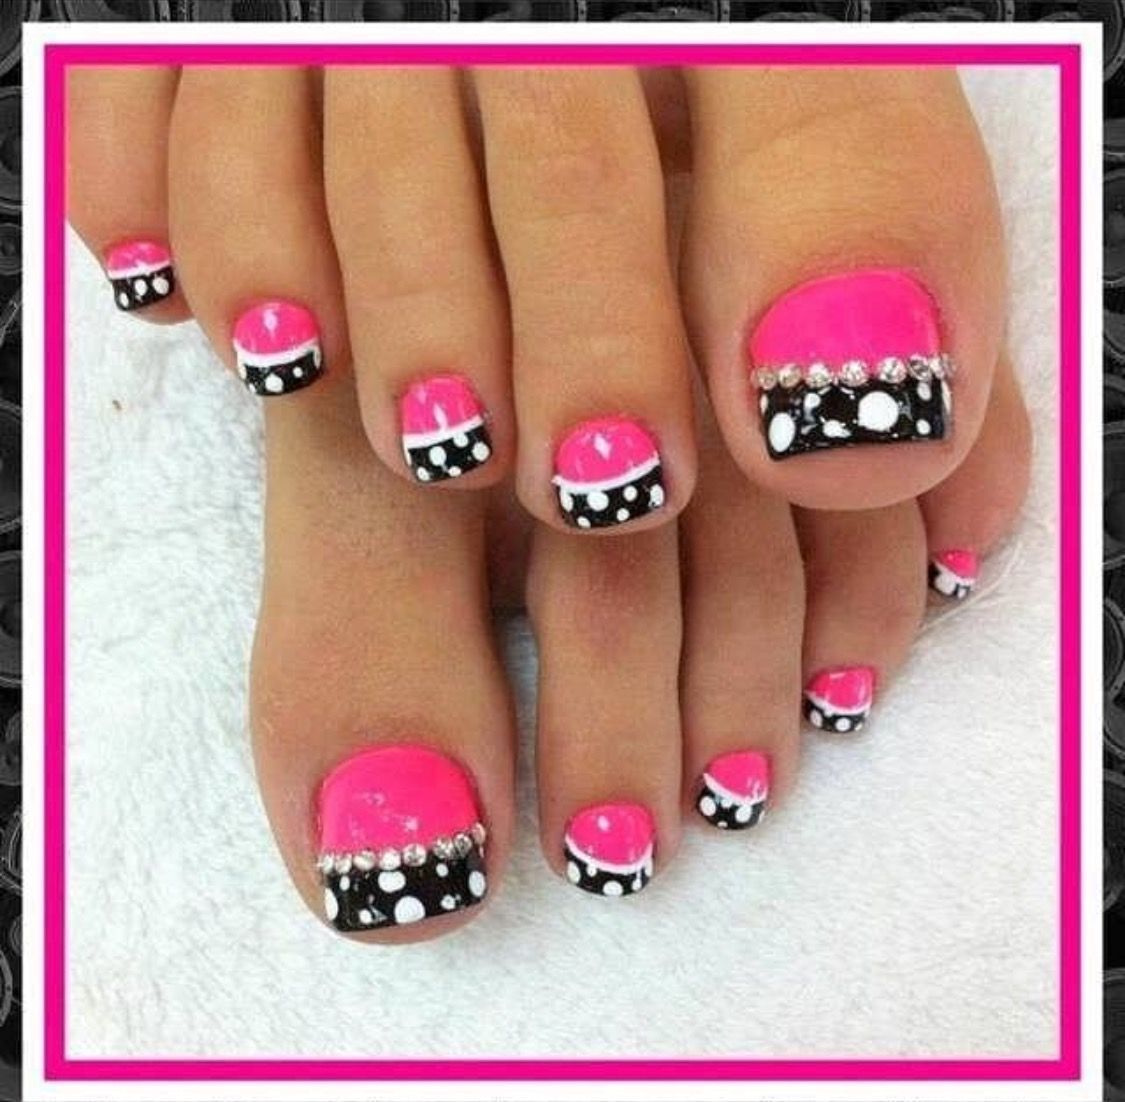 Pin By Ingrid On Uas Pinterest Pedi Pedicures And Mani Pedi